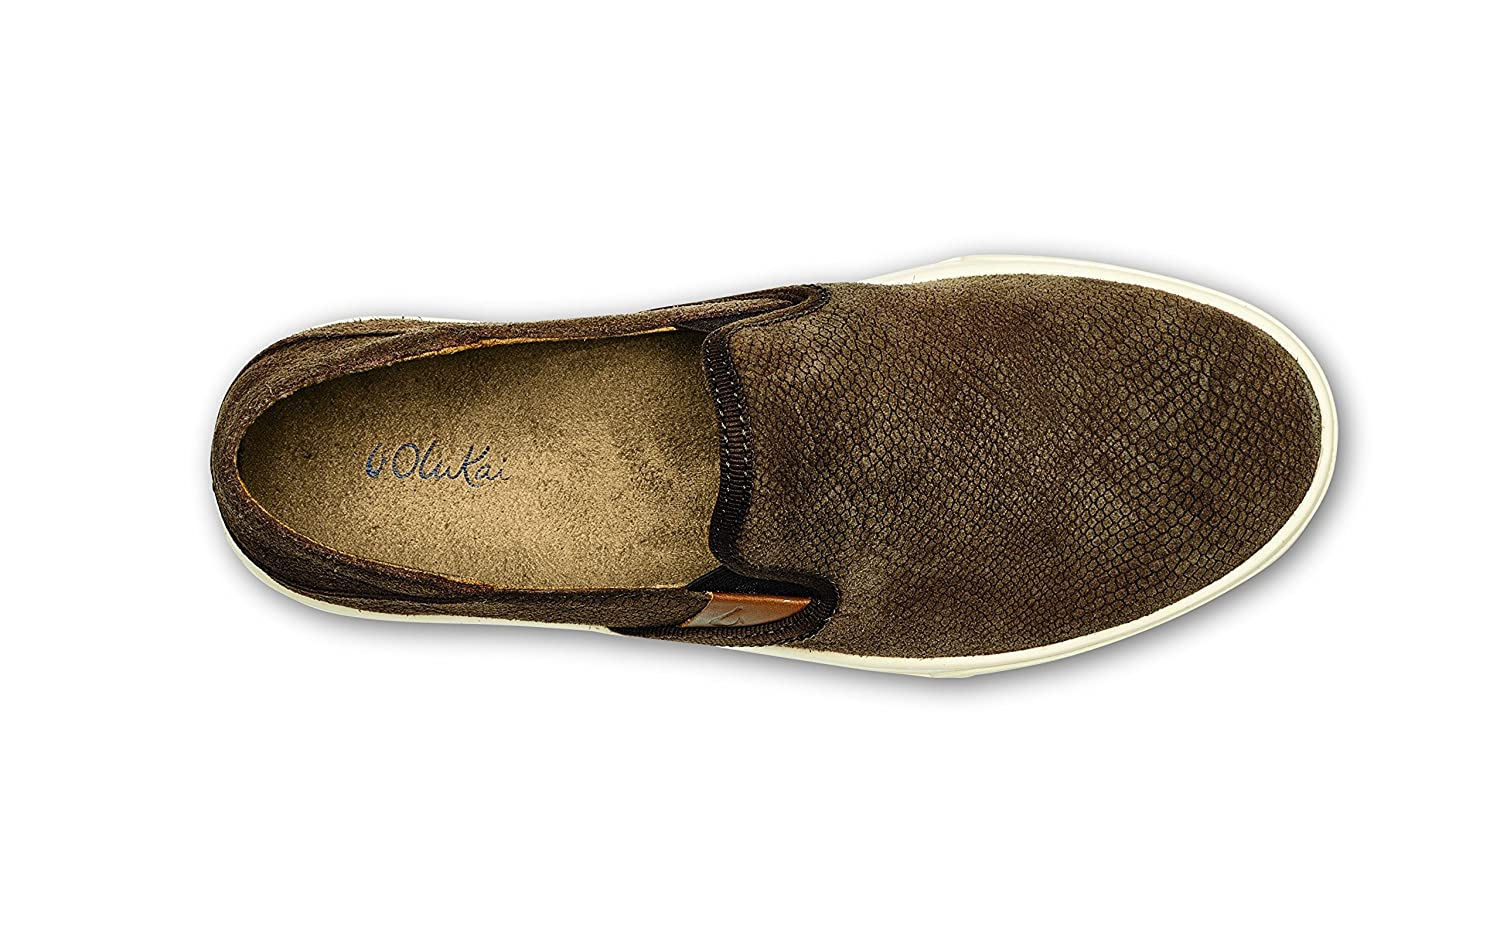 OLUKAI Pehuea Shoes - US|Dark Women's B01NCLPZ4T 11 B(M) US|Dark - Java Honu/Dark Java a7106f